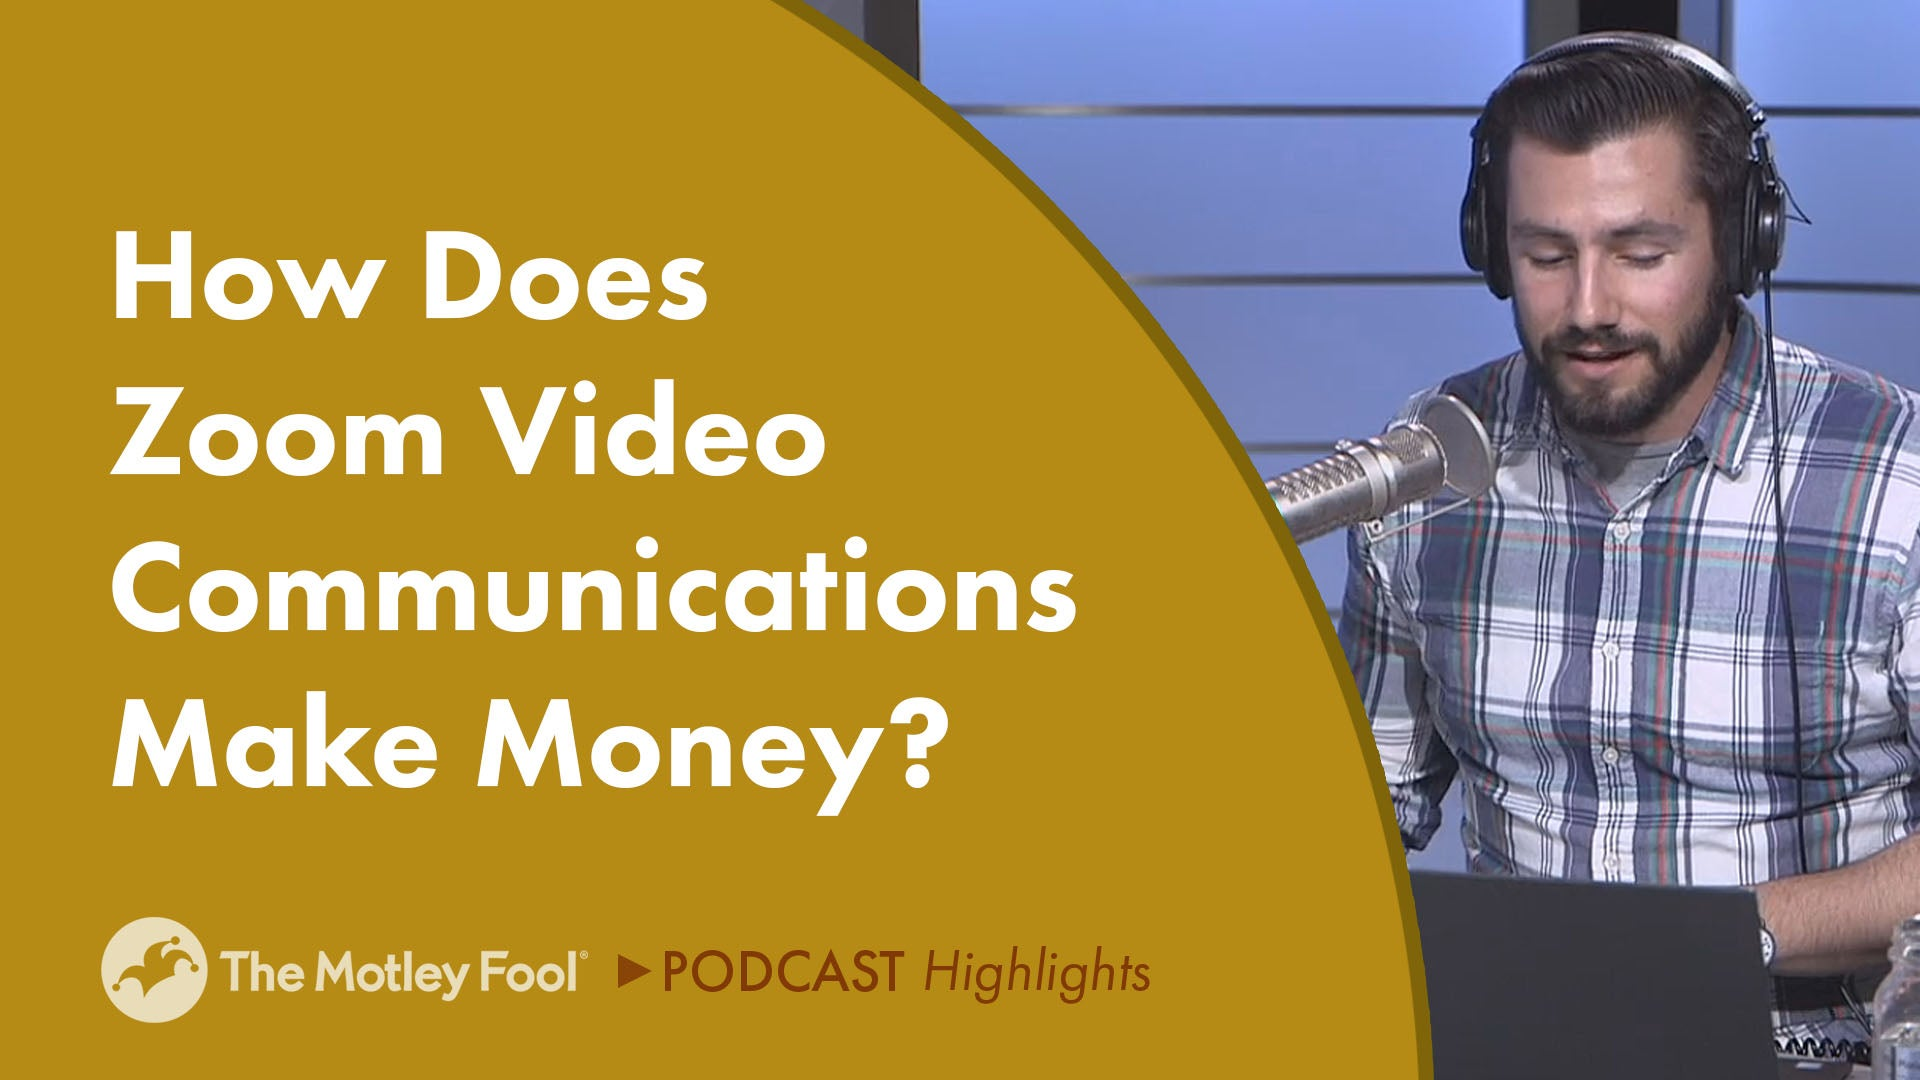 QnA VBage How Does Zoom Video Communications Make Money?